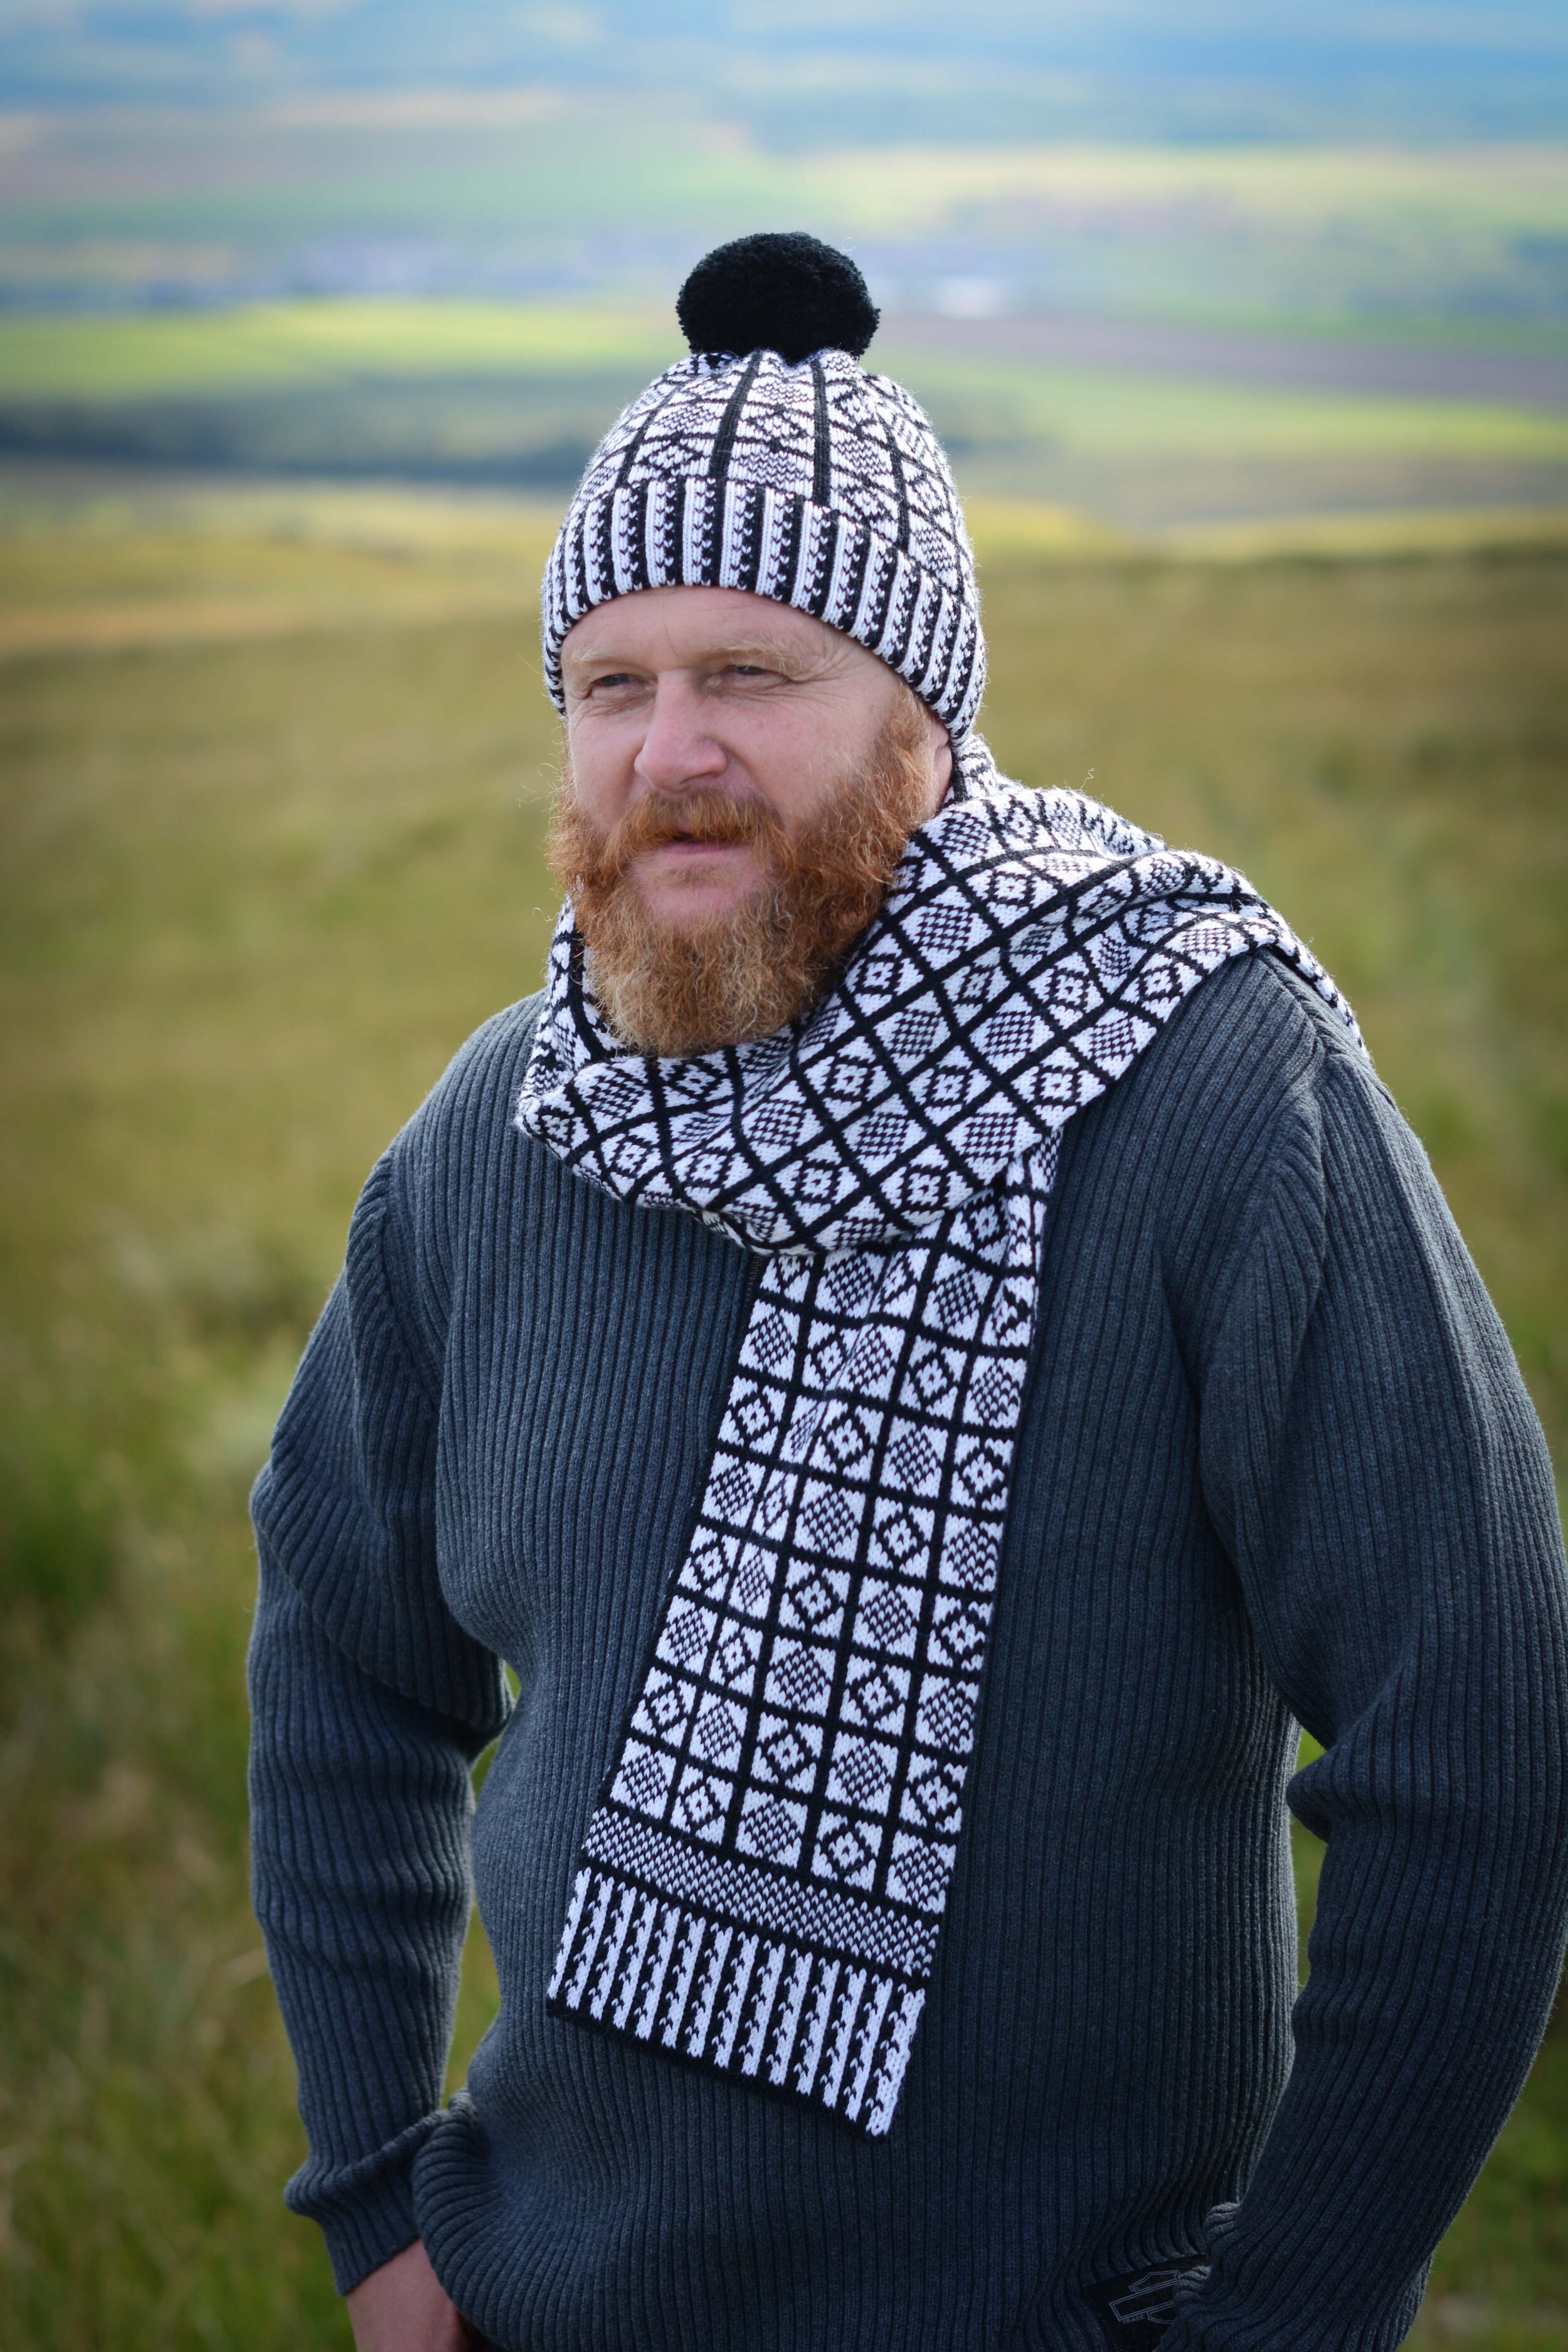 Merino blend hat and scarf in black and white Duke pattern.